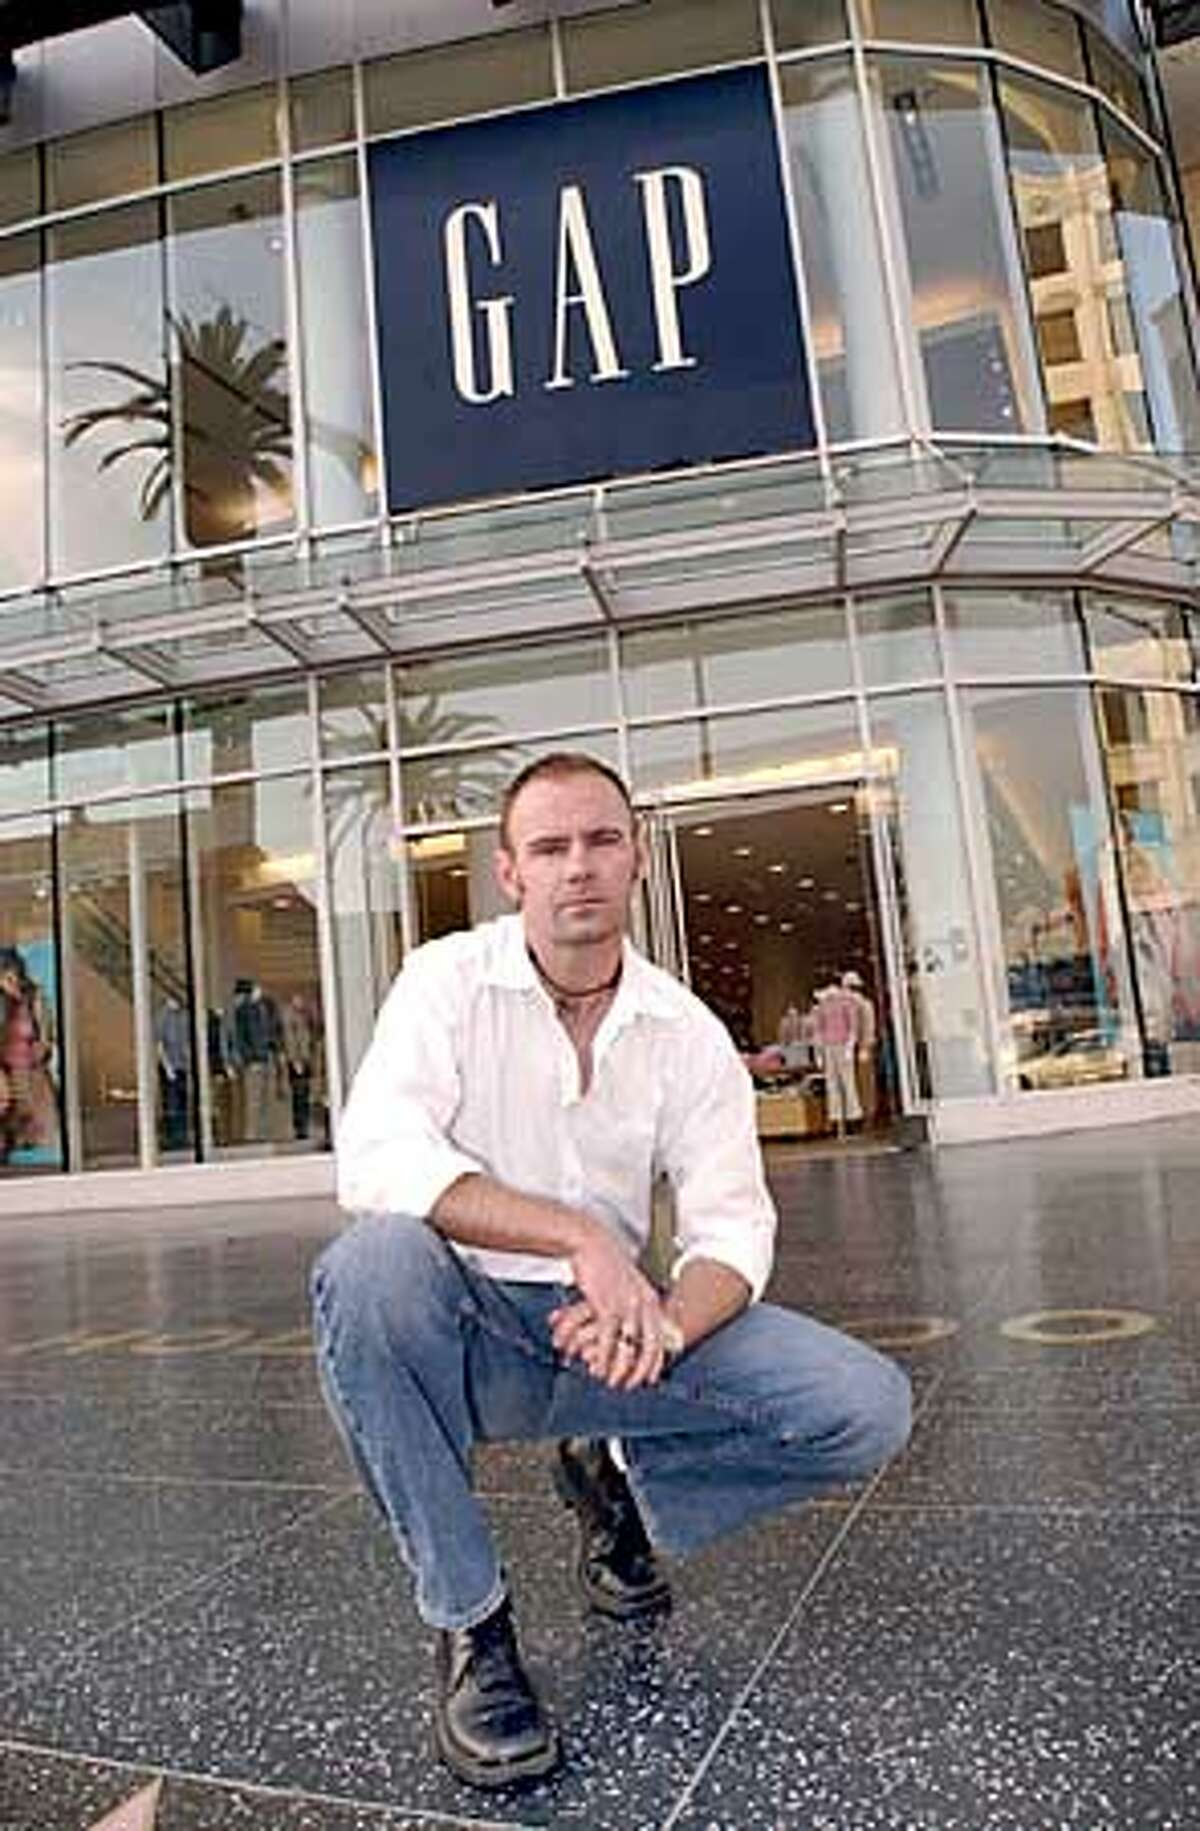 Robert Boleyn poses in front of a GAP store in the Hollywood section of Los Angeles, Tuesday, Feb. 4, 2003. Boleyn is wearing GAP pants, shirt, shoes and belt that he purchased in order to work one of the stores.